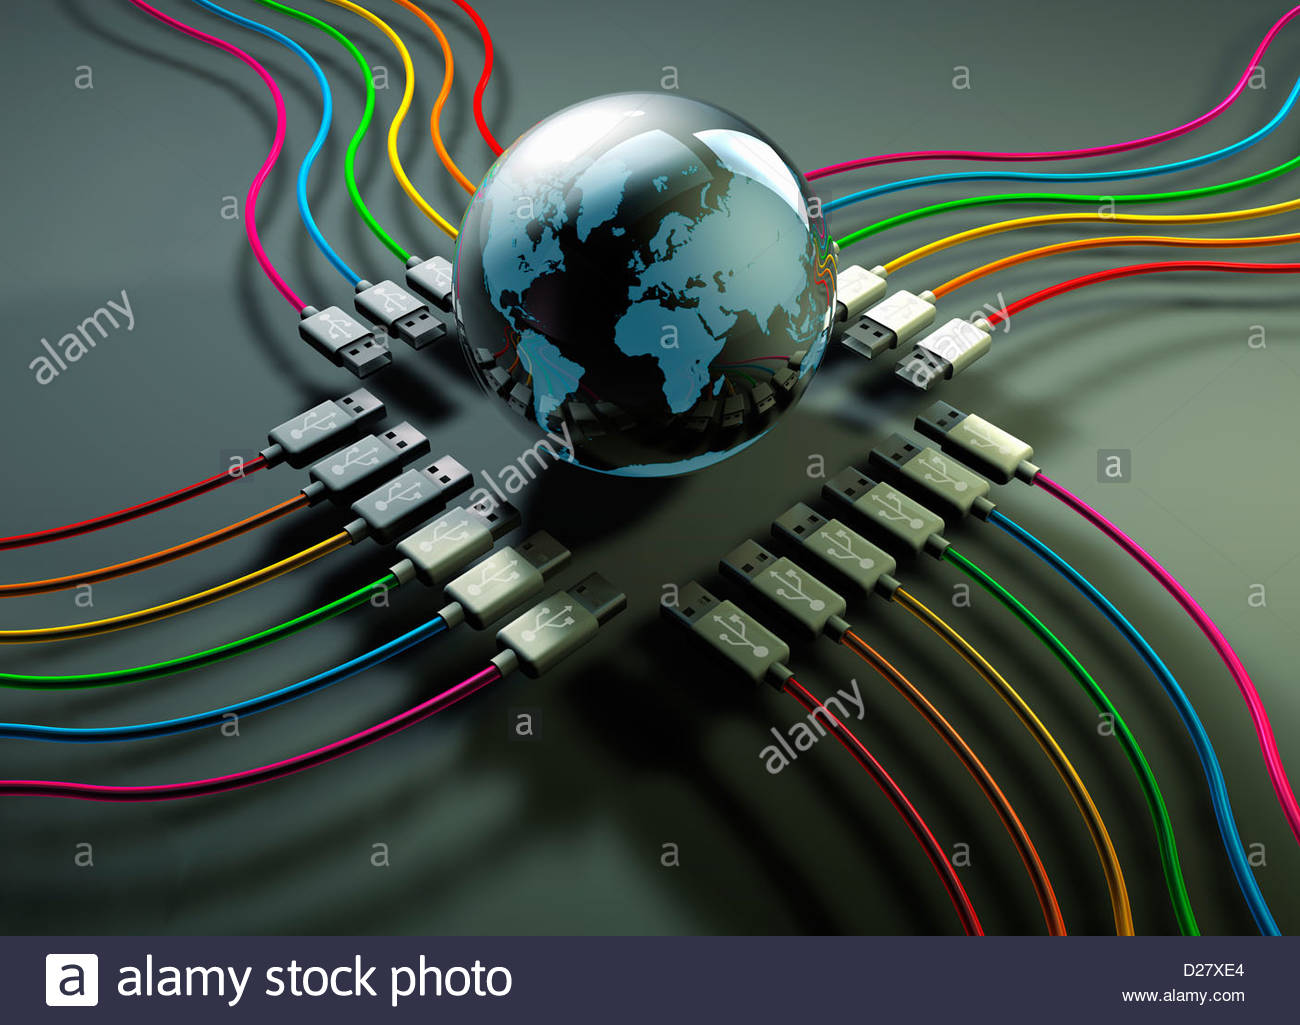 Globe at center of multicolored usb cables - Stock Image